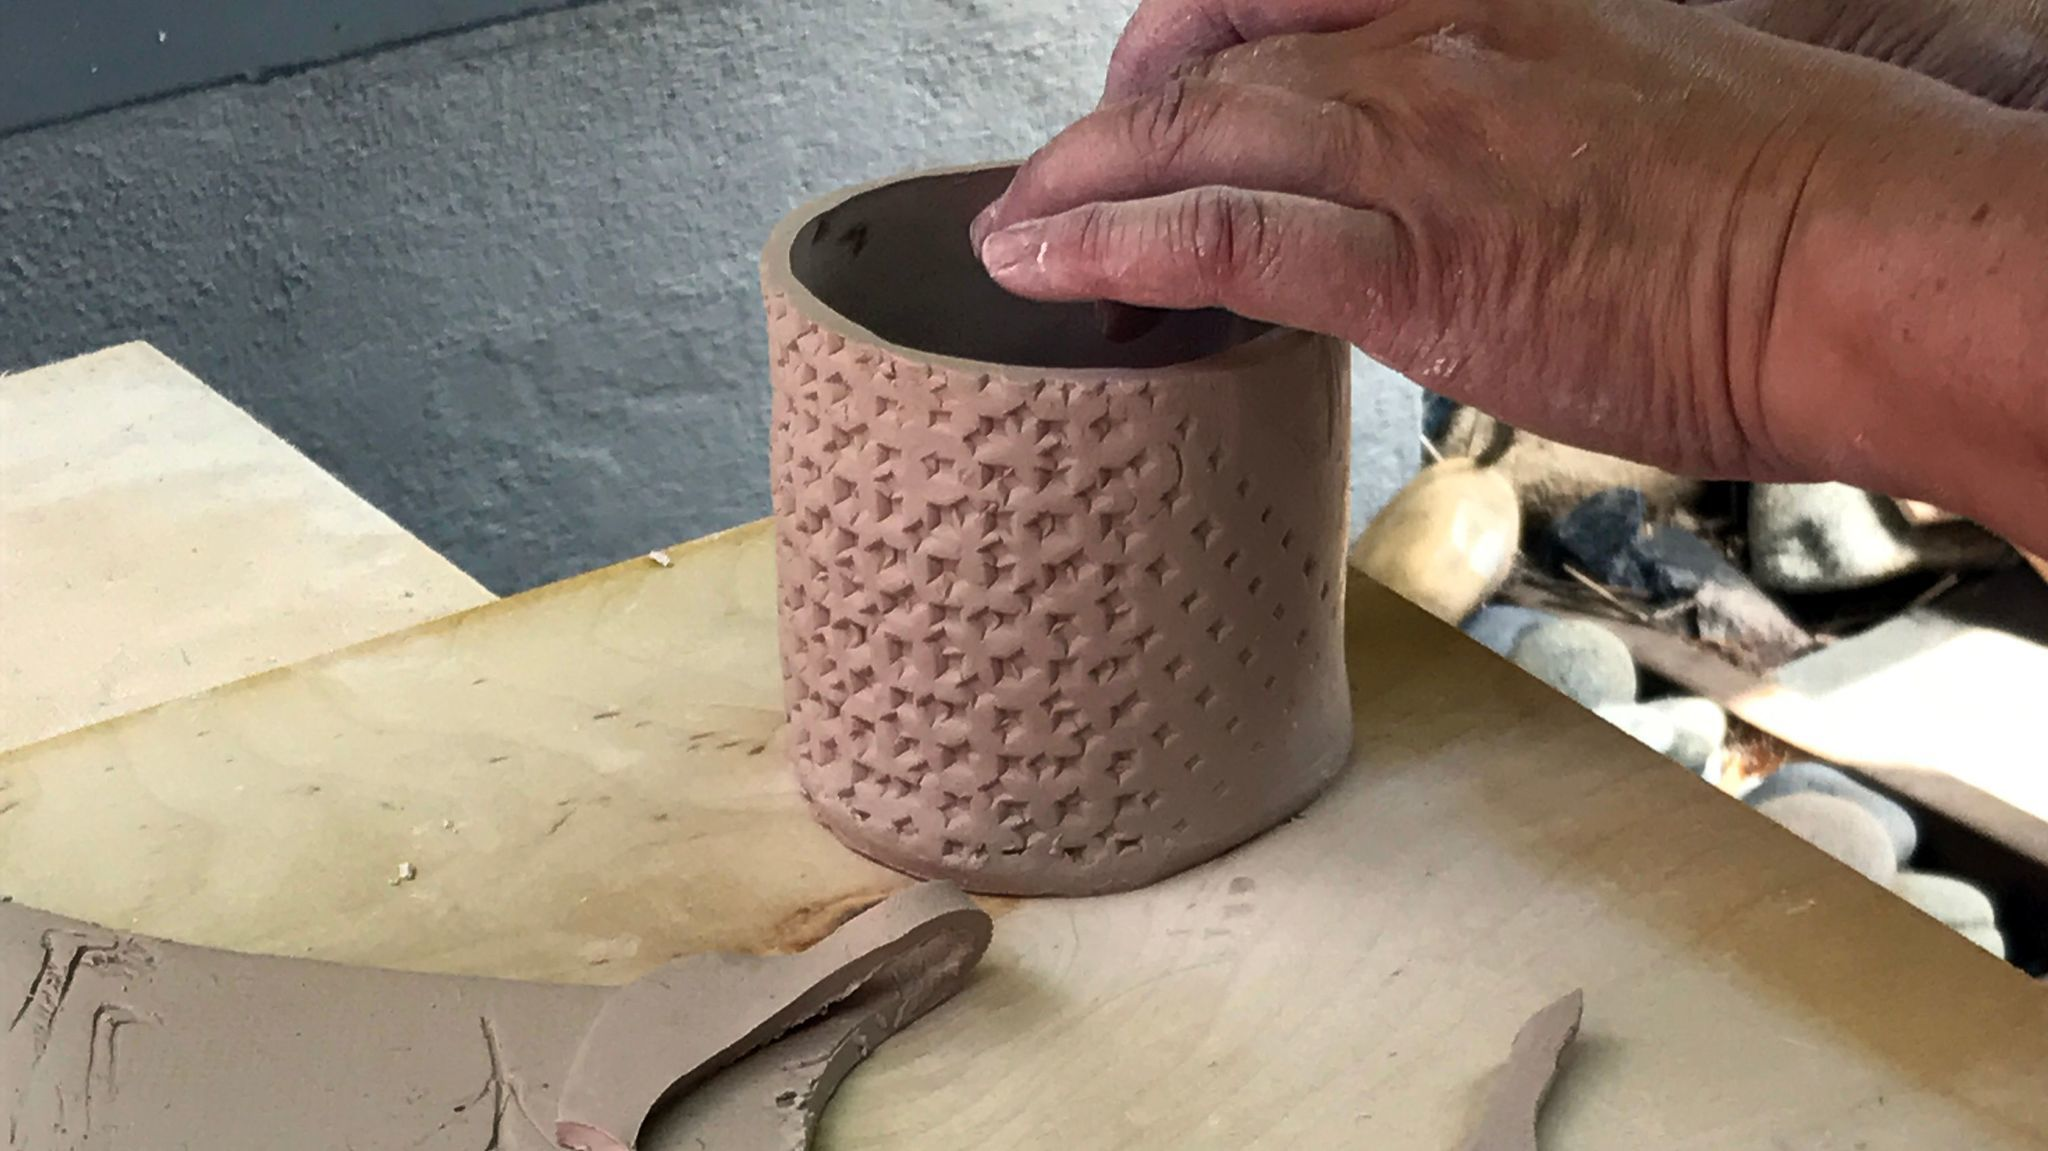 The idea is to get people off their screens and making stuff with their own hands.